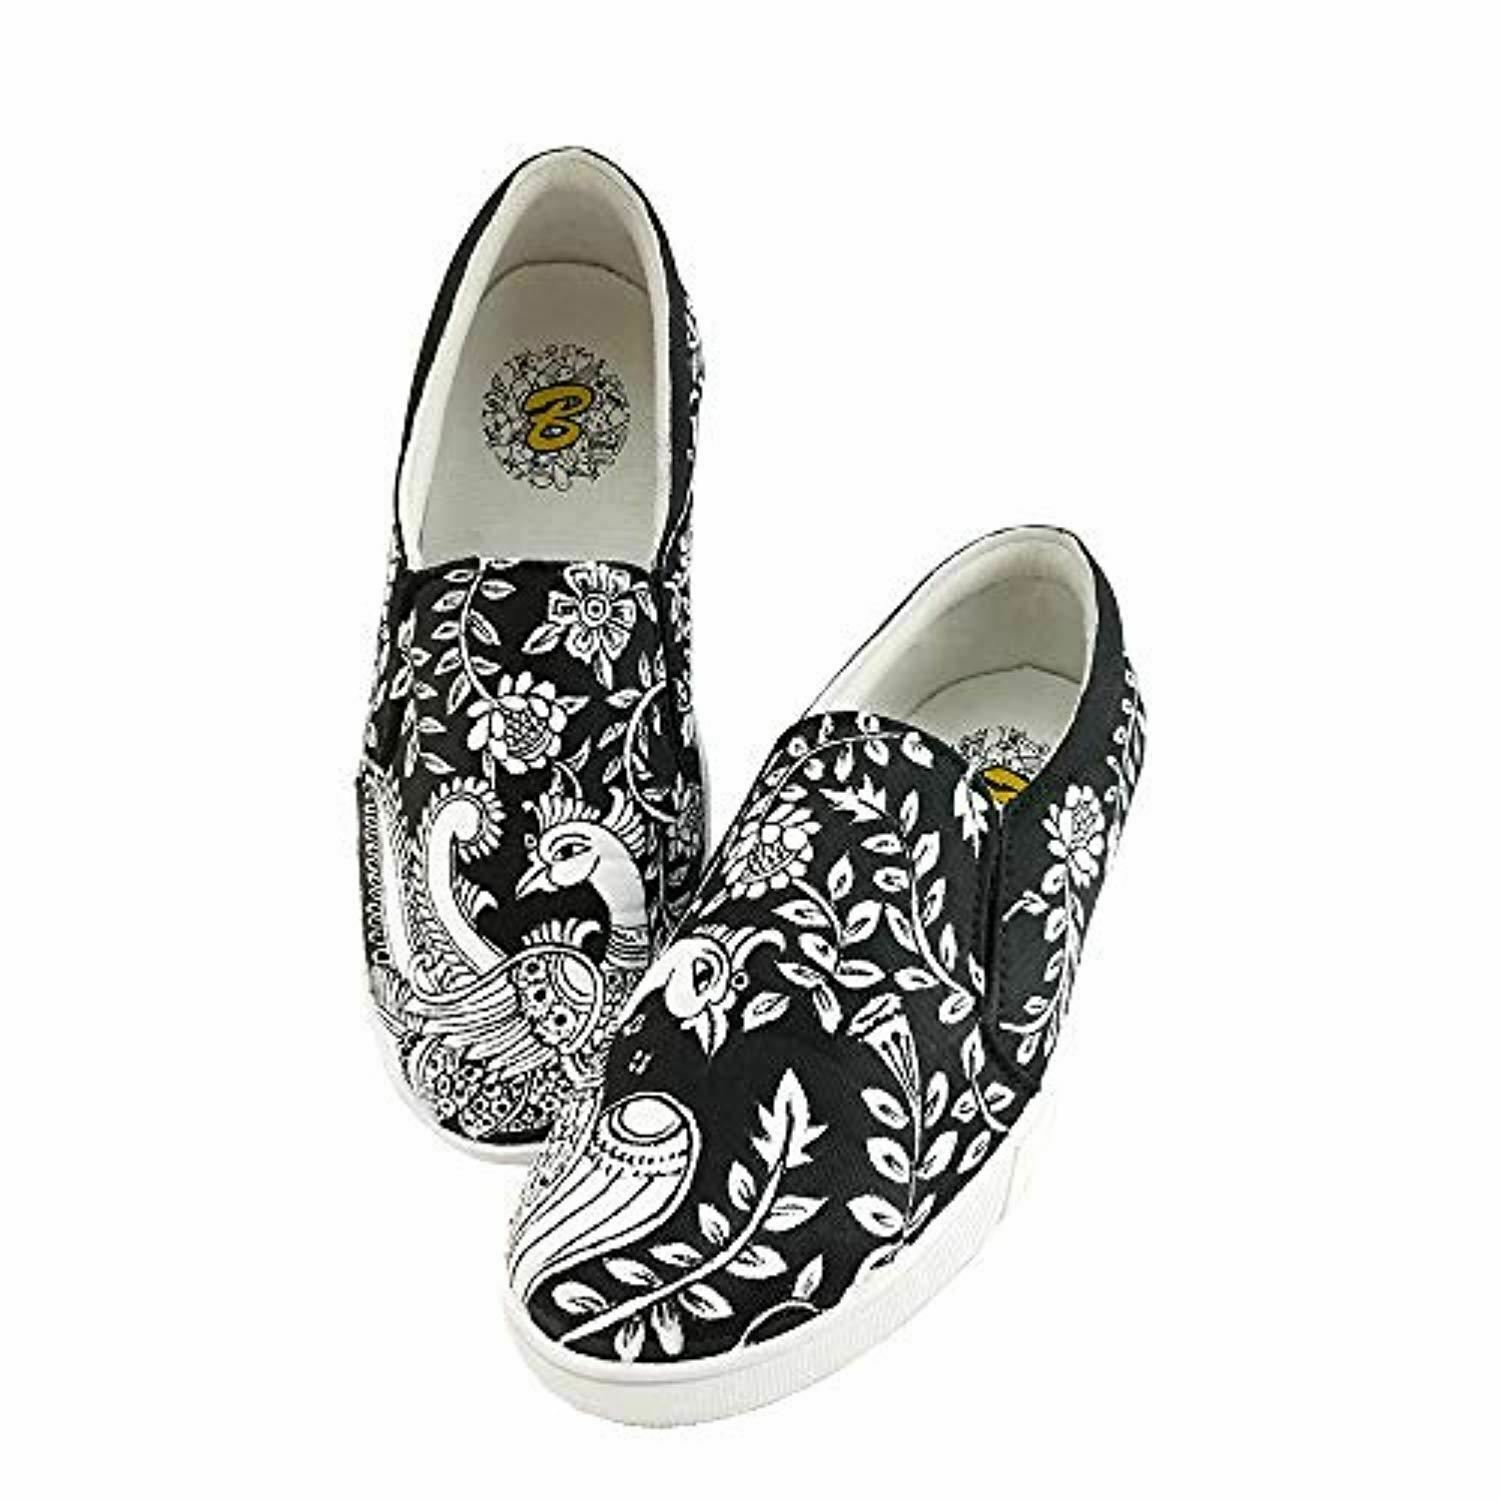 Women Canvas shoes Hand Painted Water Proof Kalamkari Designed shoes for Girls Co